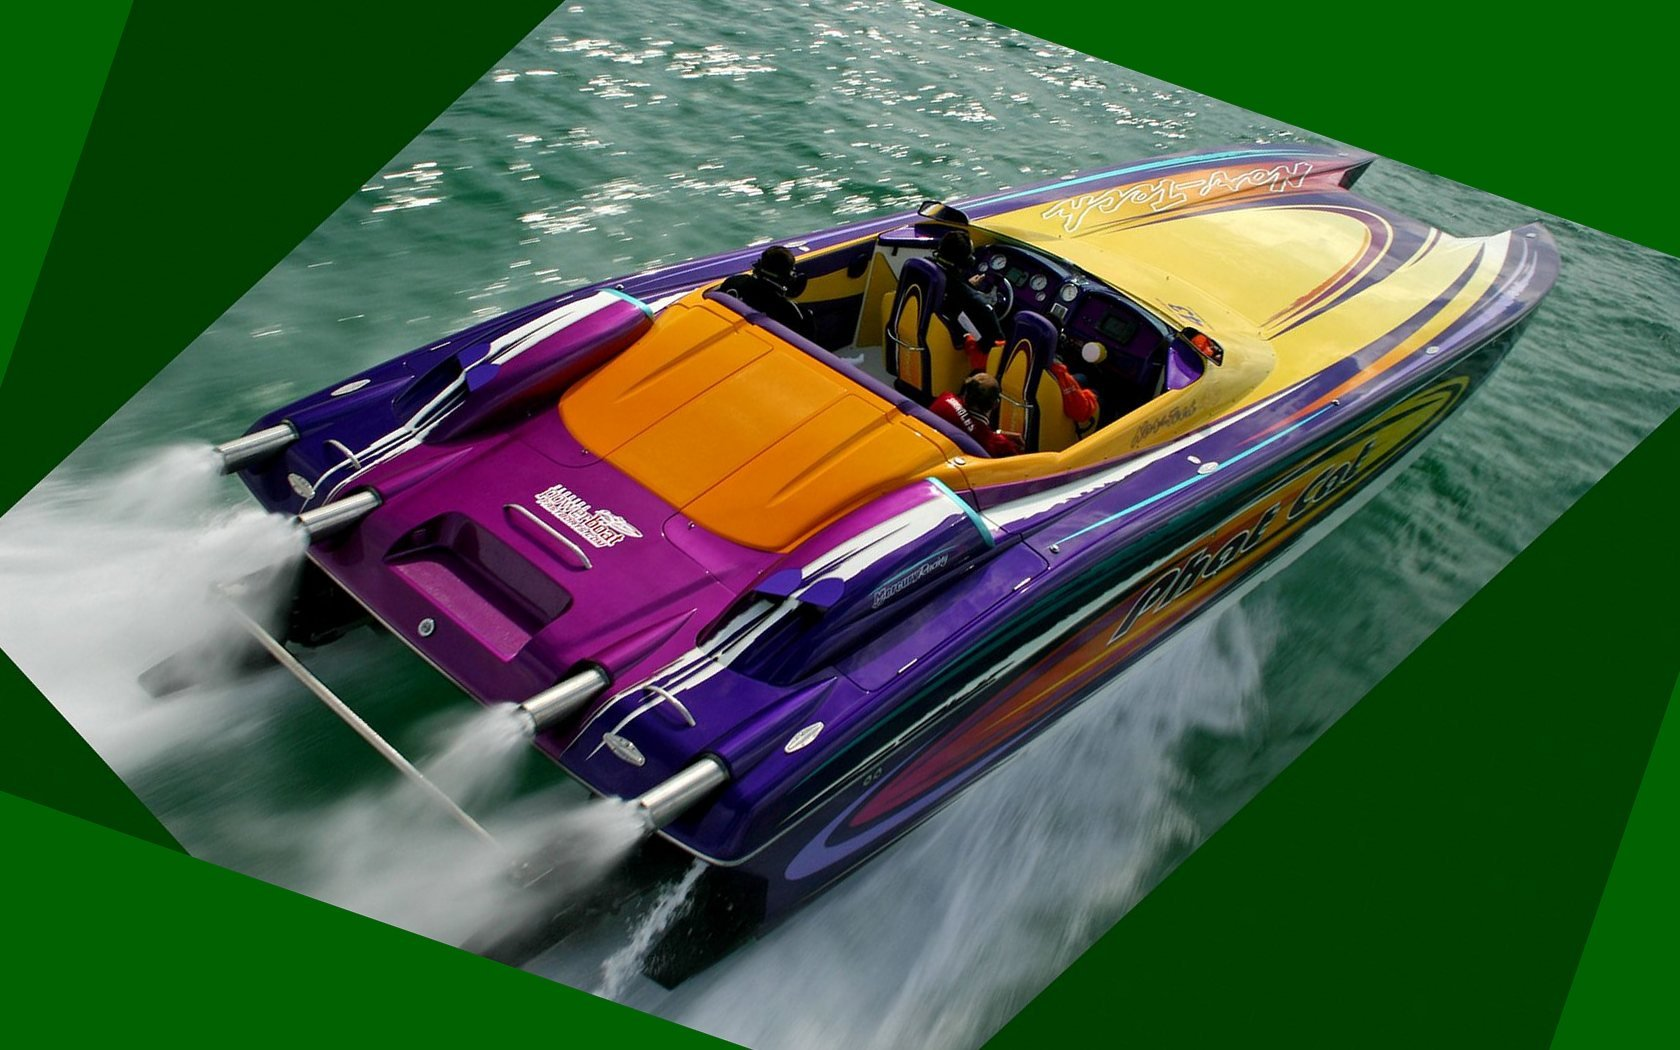 superboat custom cigarette offshore race racing wallpaper background 1680x1050